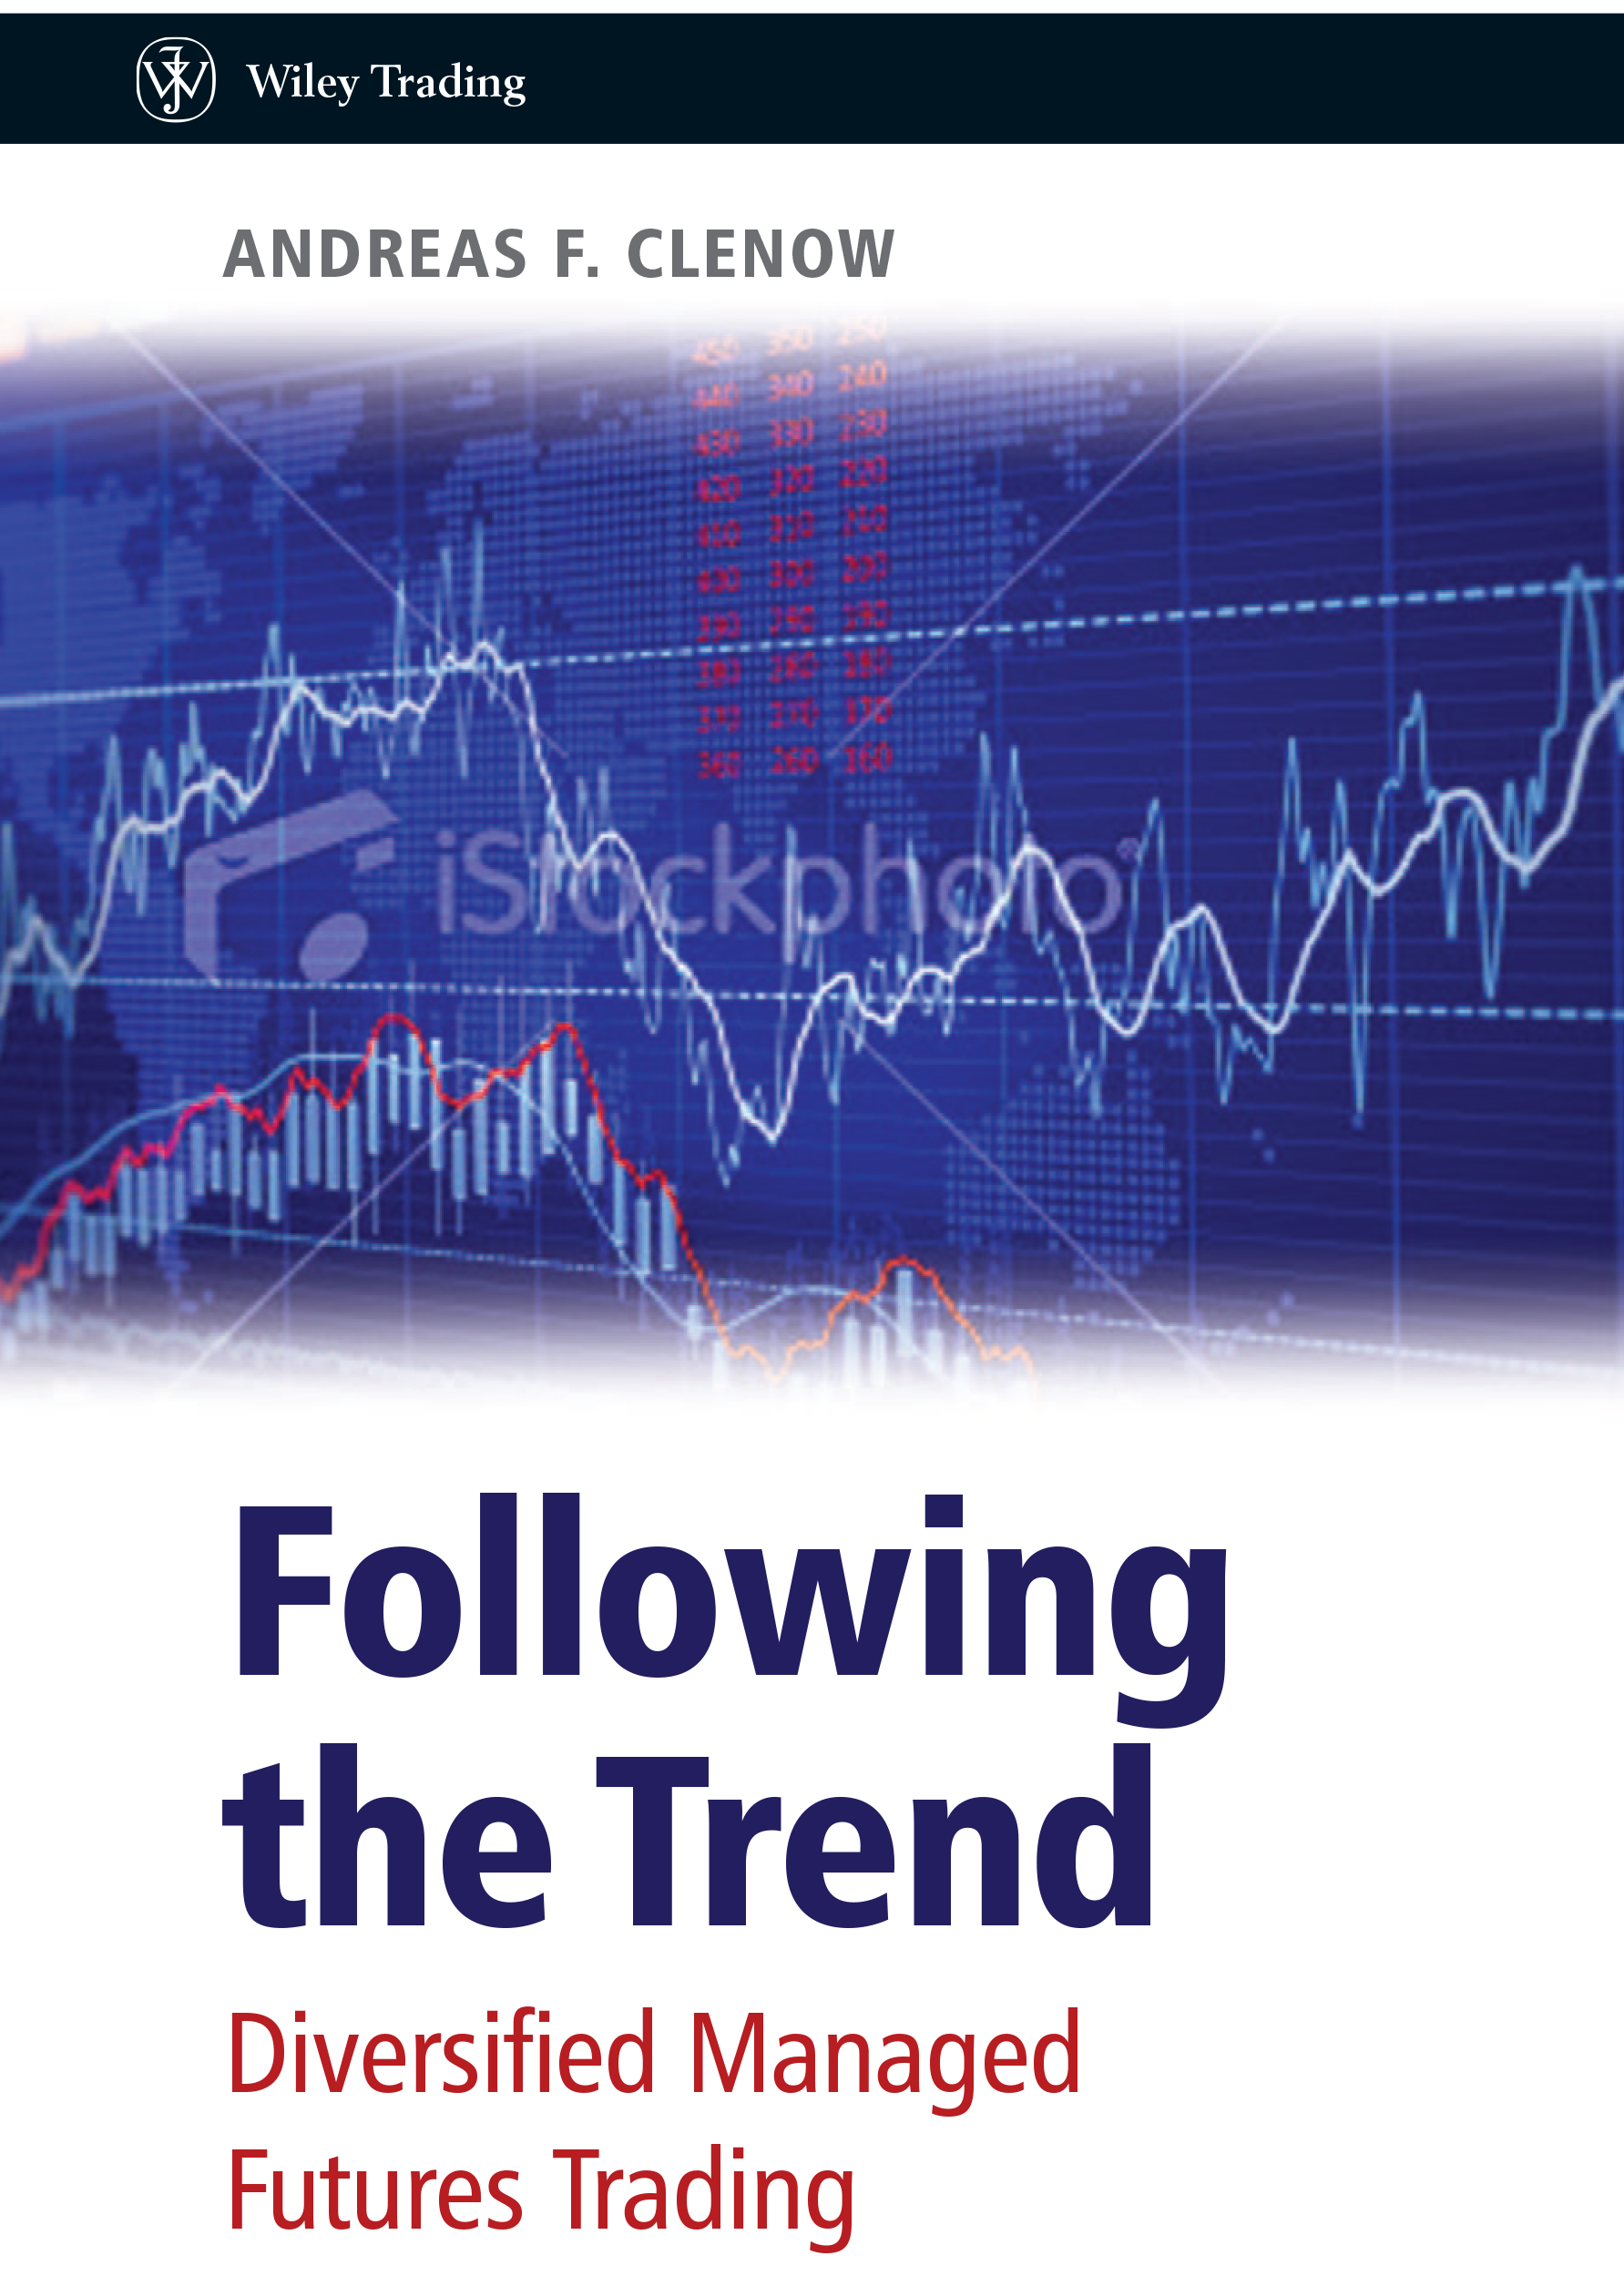 Why i am self publishing my new trading book following the trend clenowdiversified 05 clenowdiversified 06 clenowdiversified 07 clenowdiversified 08 fandeluxe Images